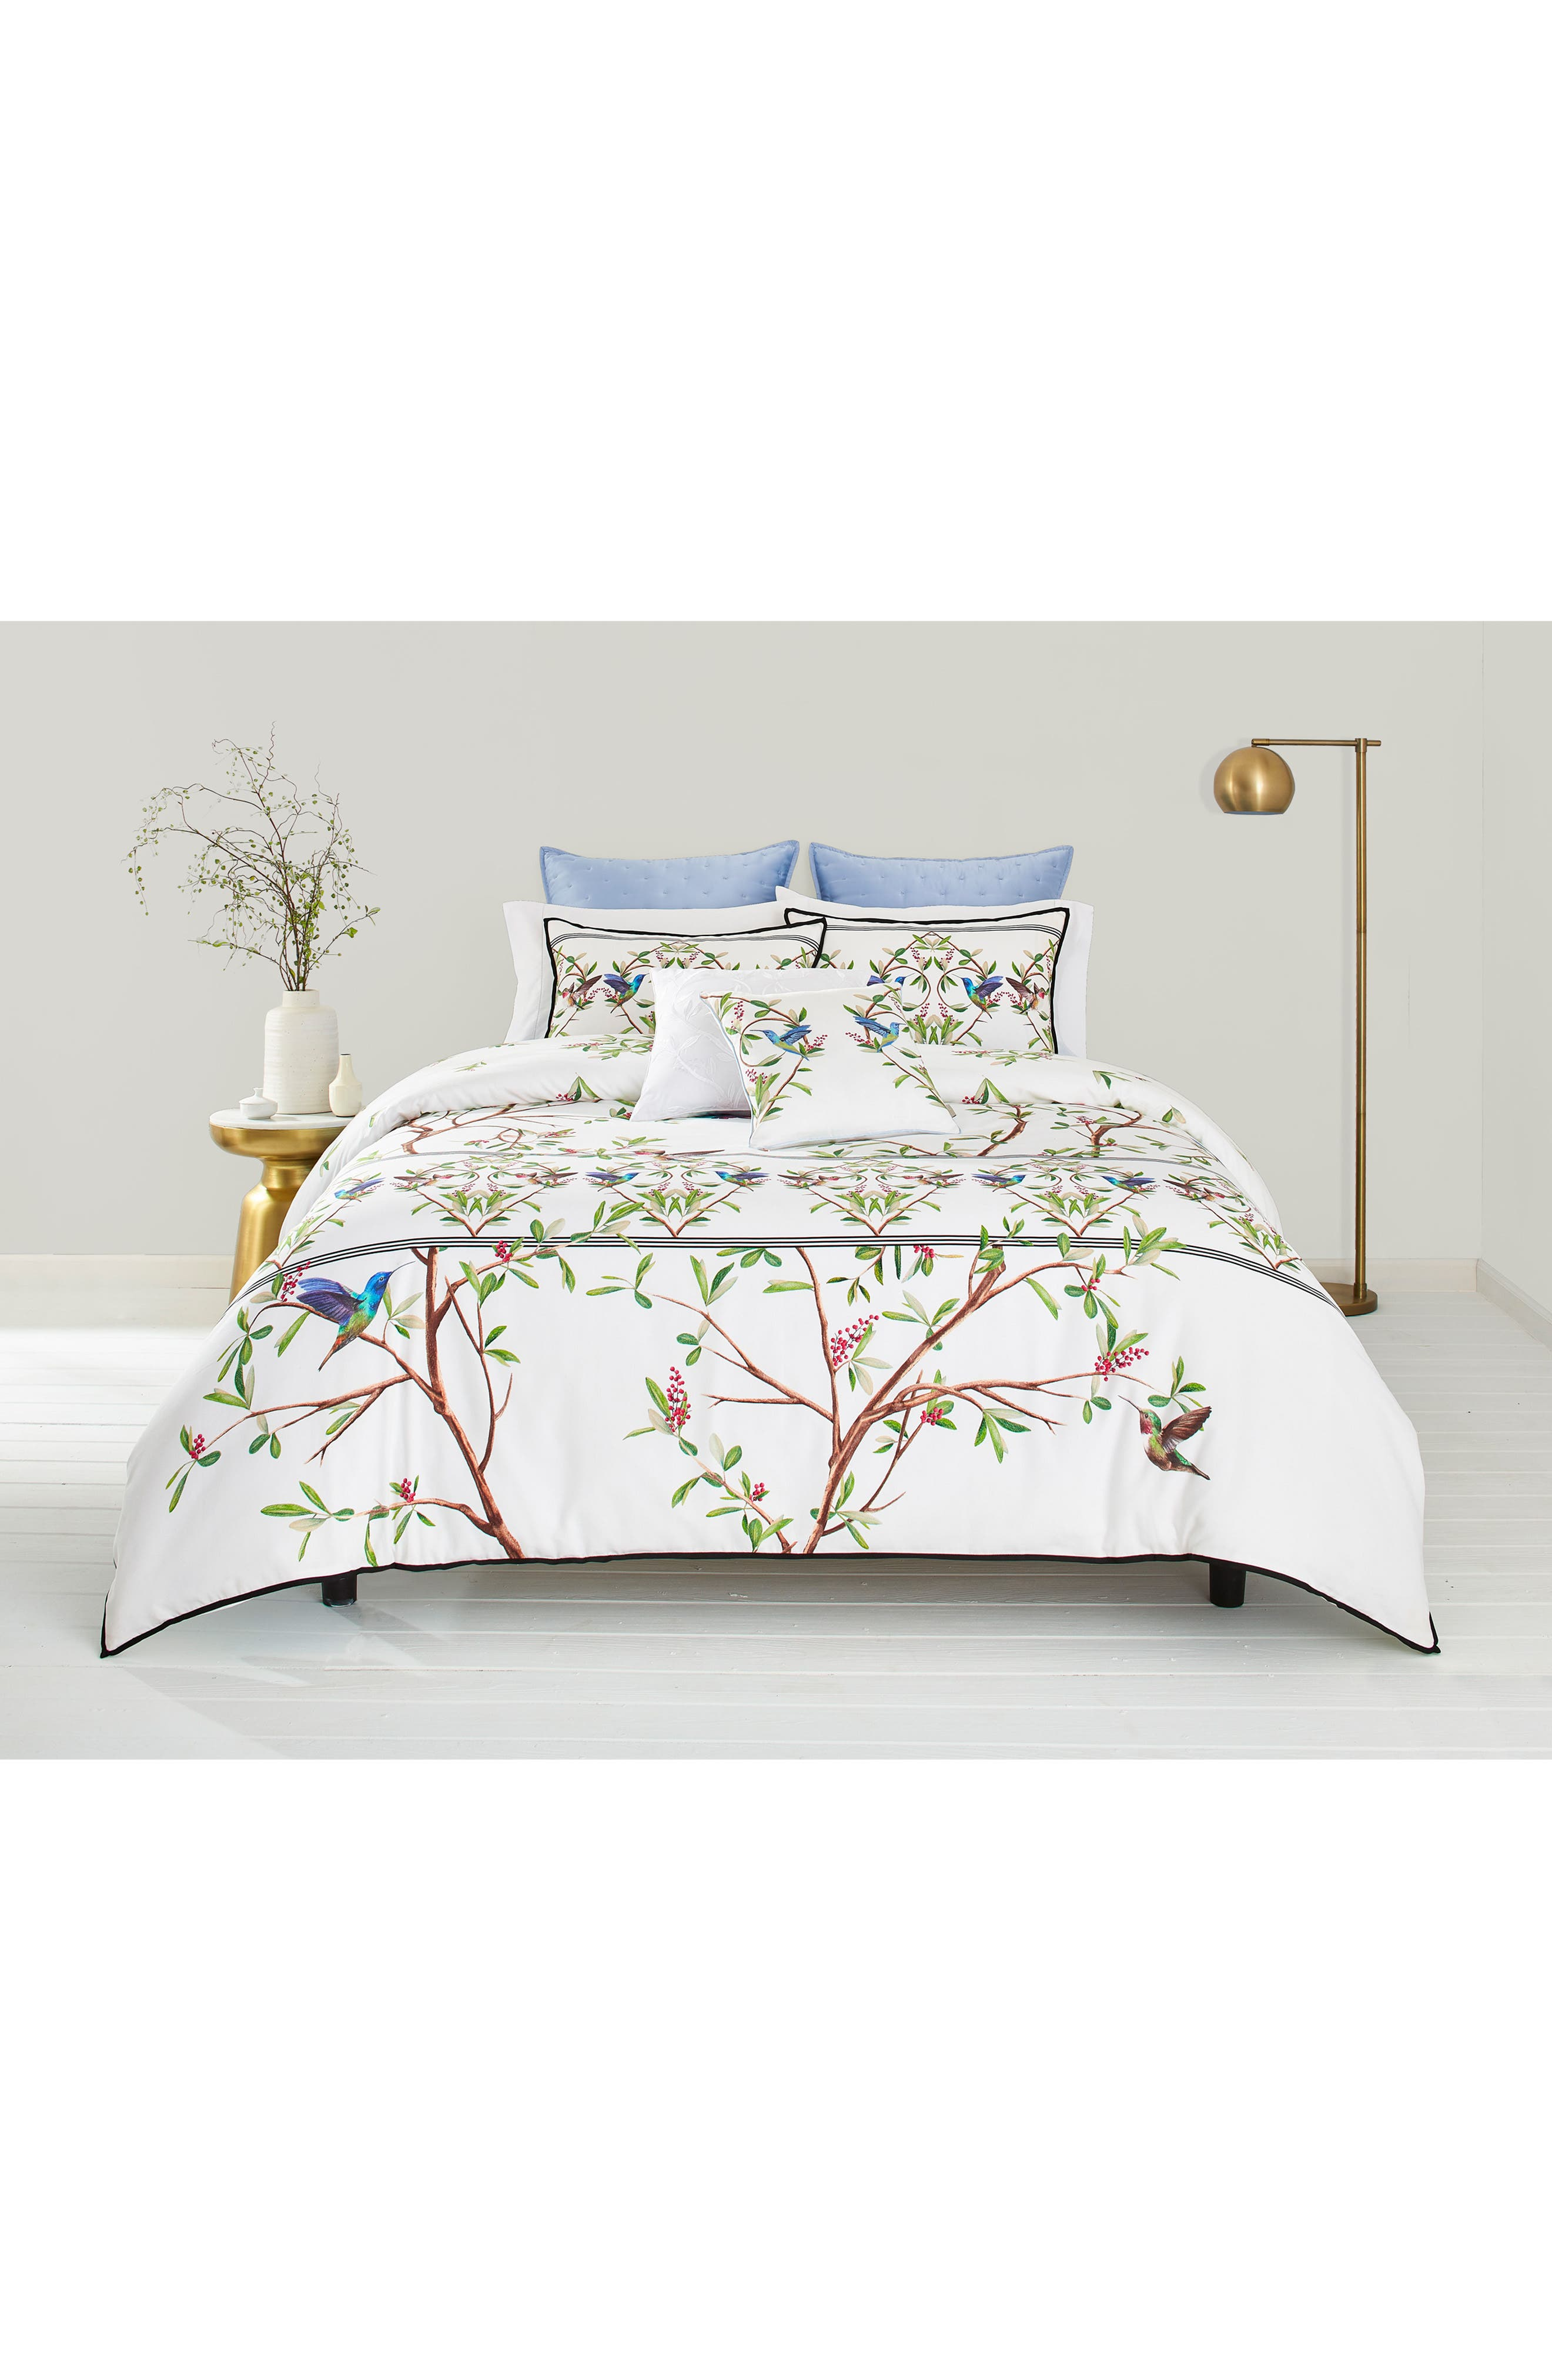 TED BAKER LONDON Highgrove Comforter & Sham Set, Main, color, WHITE/ MULTI